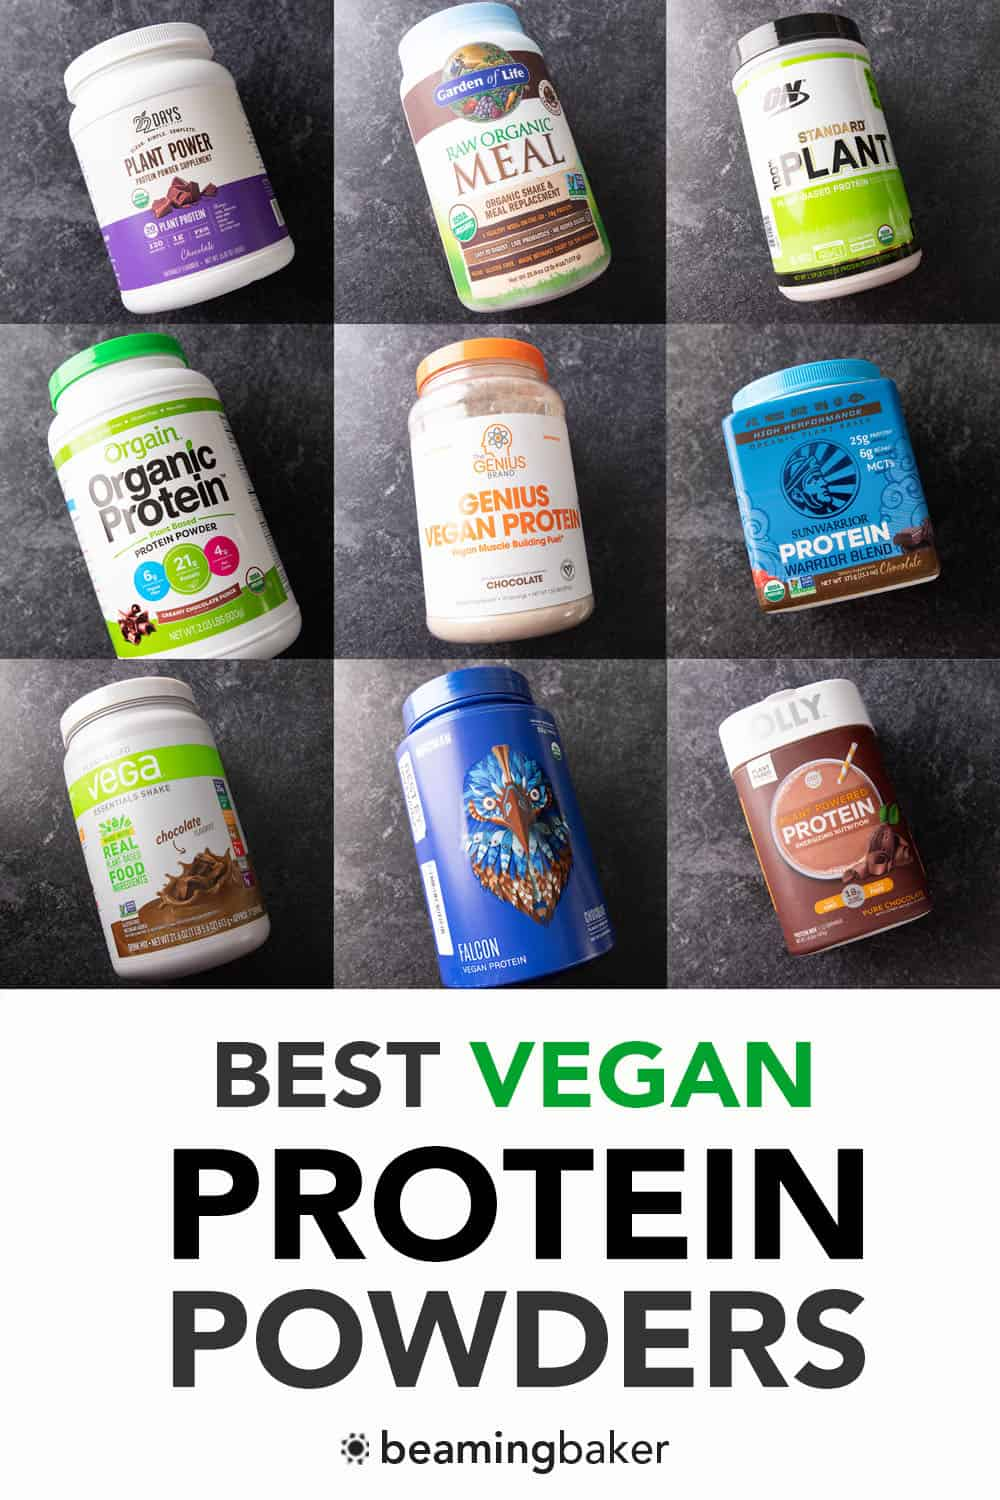 Best Vegan Protein Powder Review: my review guide of the best tasting vegan protein powder to the worst—chocolate edition! Plant-Based. #Vegan #ProteinPowder #PlantBased #VeganProtein | Review + Recipe at BeamingBaker.com